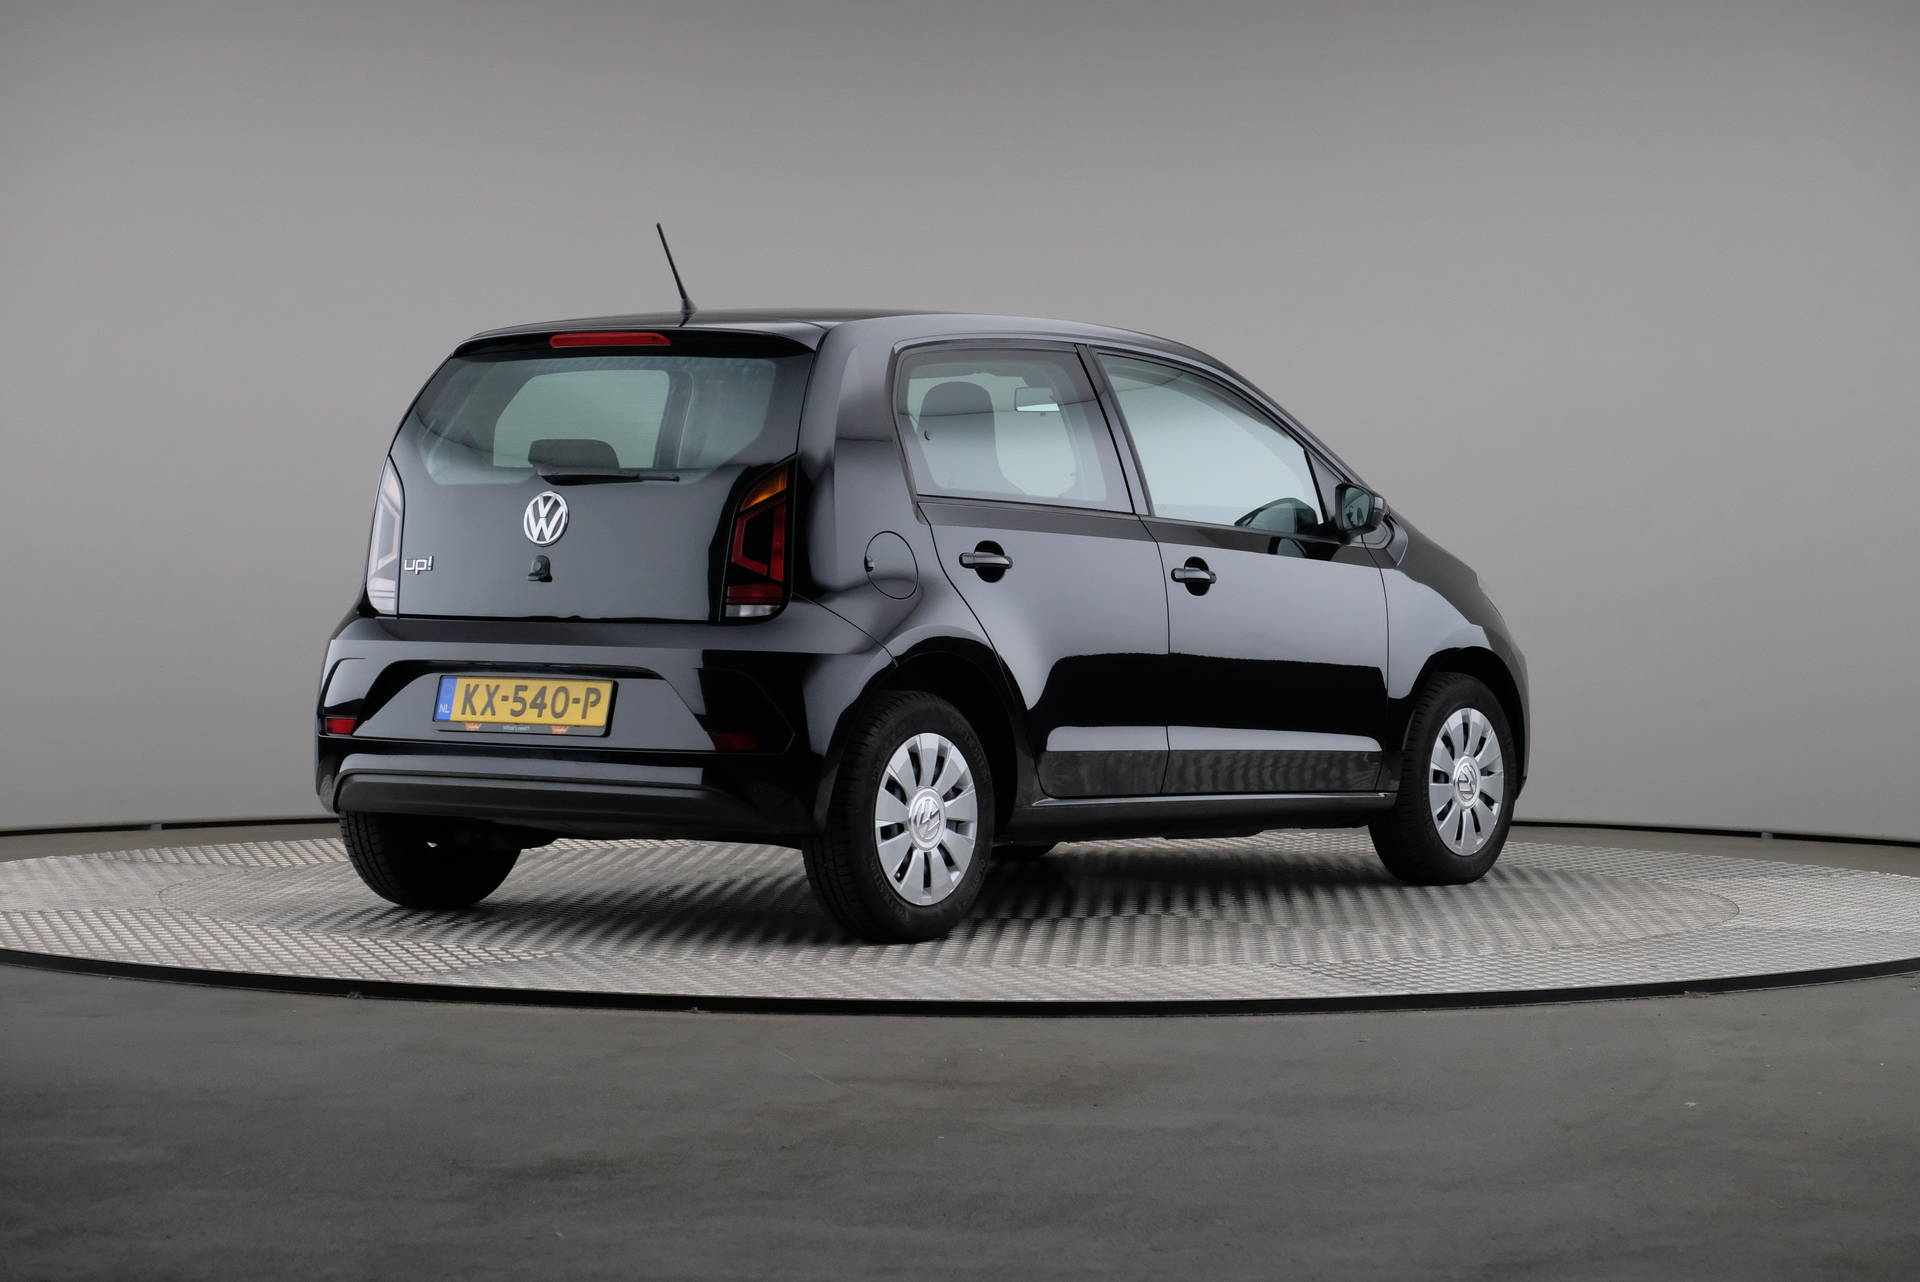 Volkswagen up! 1.0 44kW Move up! BlueMotion Technology, Airconditioning, 360-image18